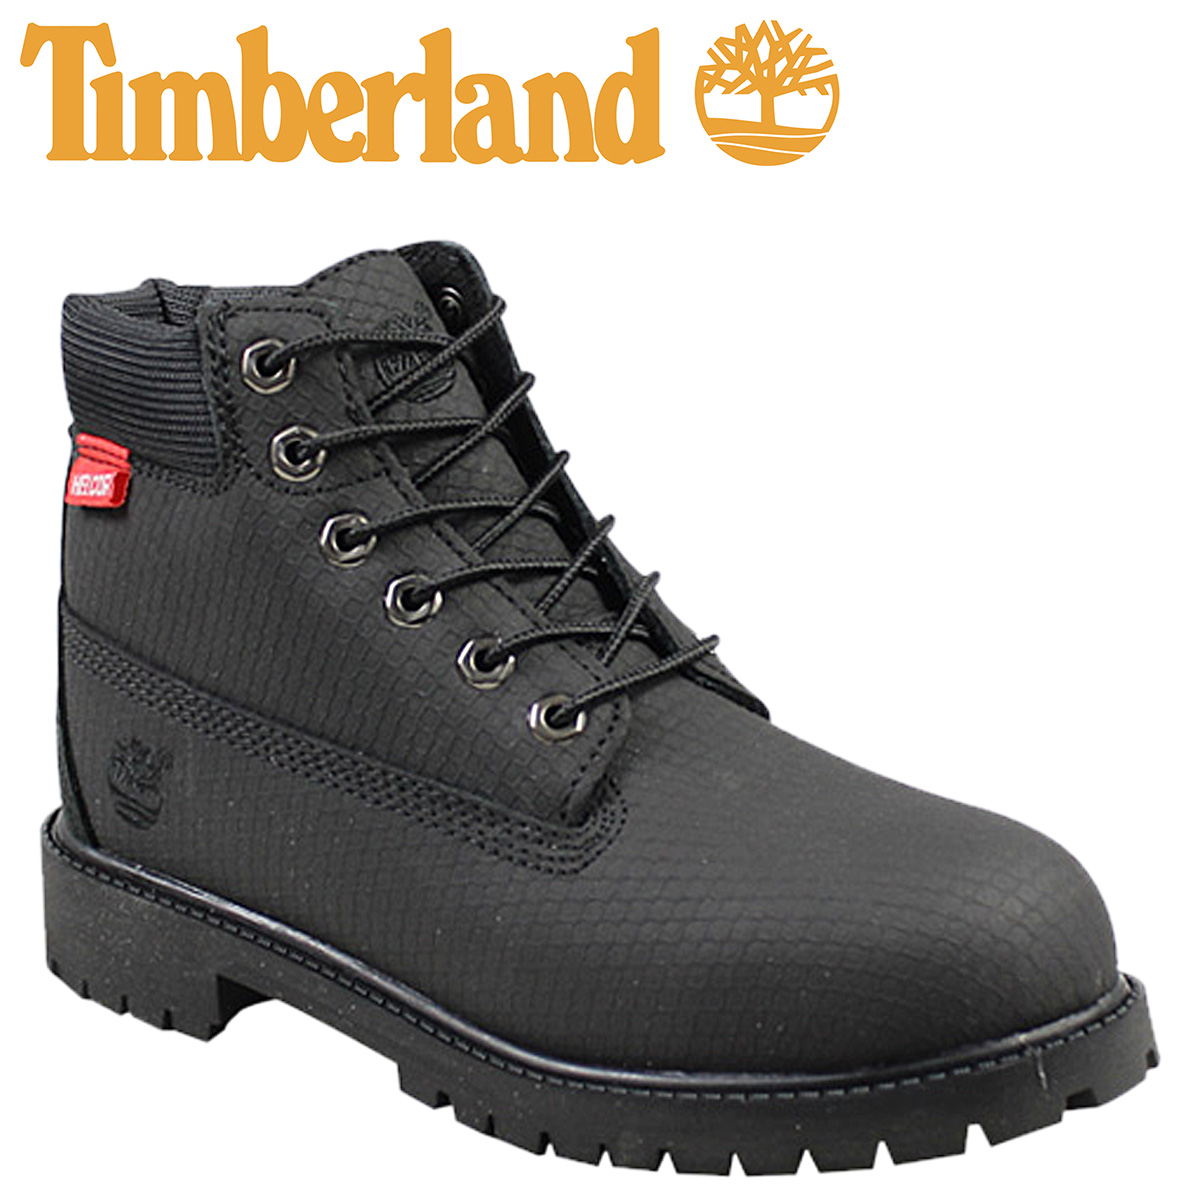 b16c2254287 6 inches of Timberland Timberland kids premium waterproof boots 6 INCH  PREMIUM WATERPROOF HELCOR LITTLE KIDS BOOTS leather youth child 6577R black  ...